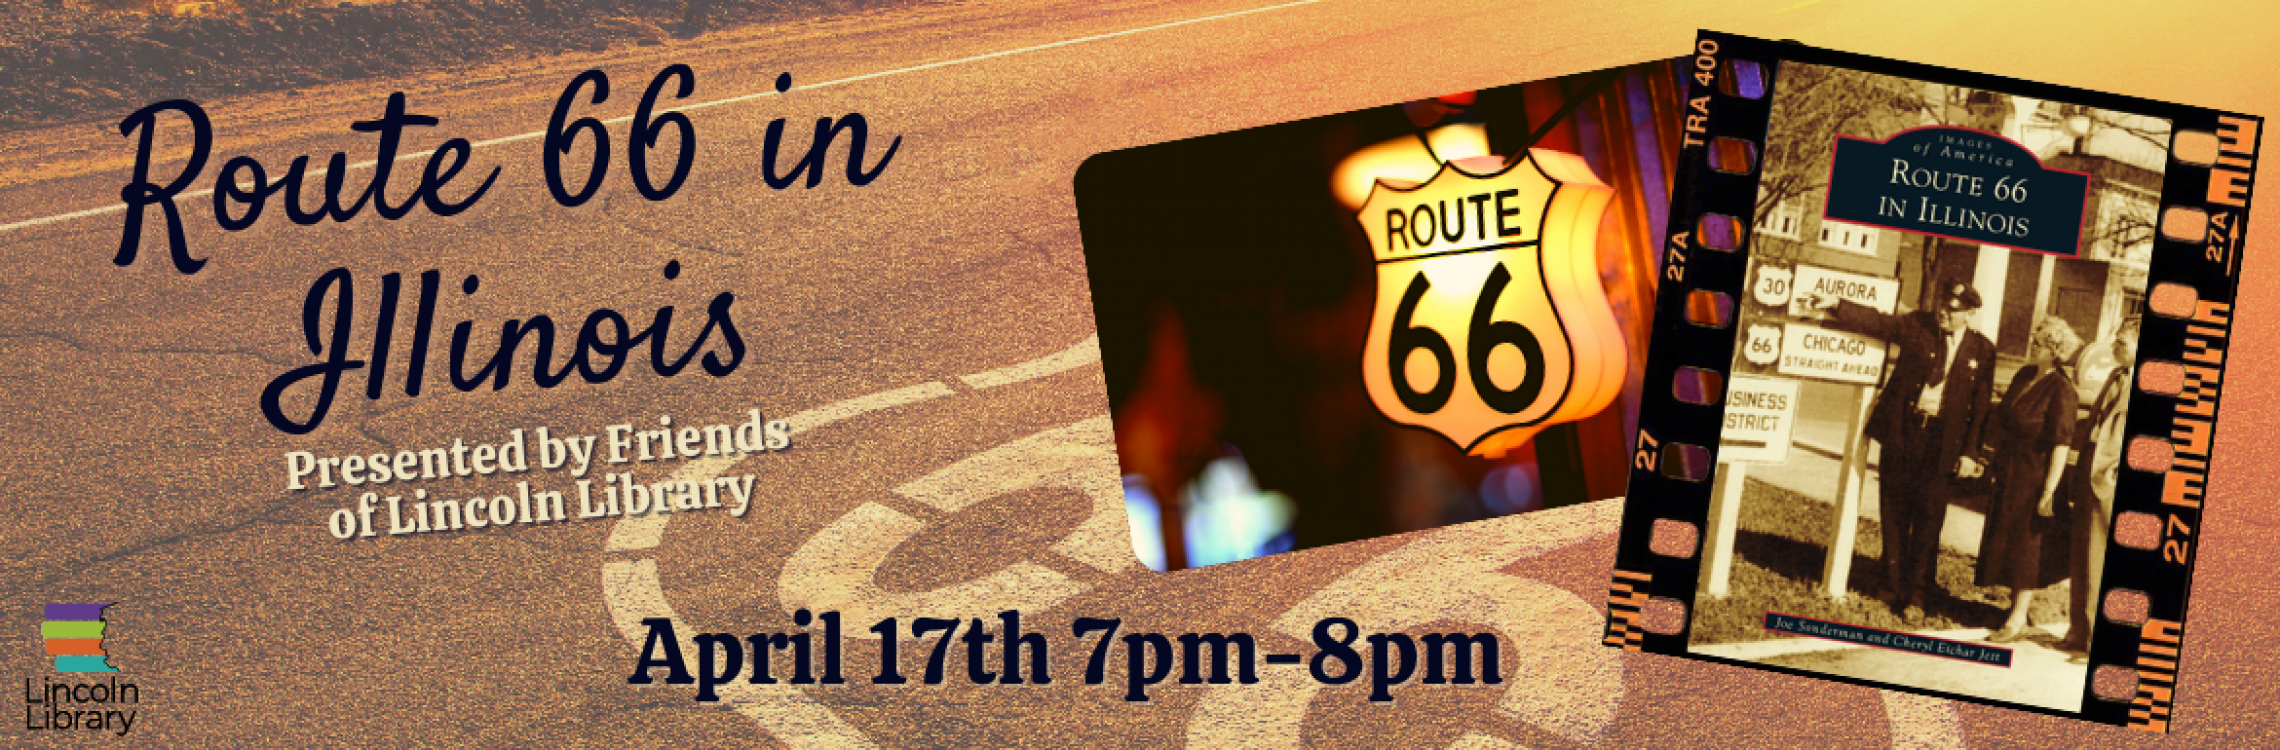 Friends of Lincoln Library present: Route 66 in Illinois with Joe Sonderman & Cheryl Eichar Jett April 17th 7PM